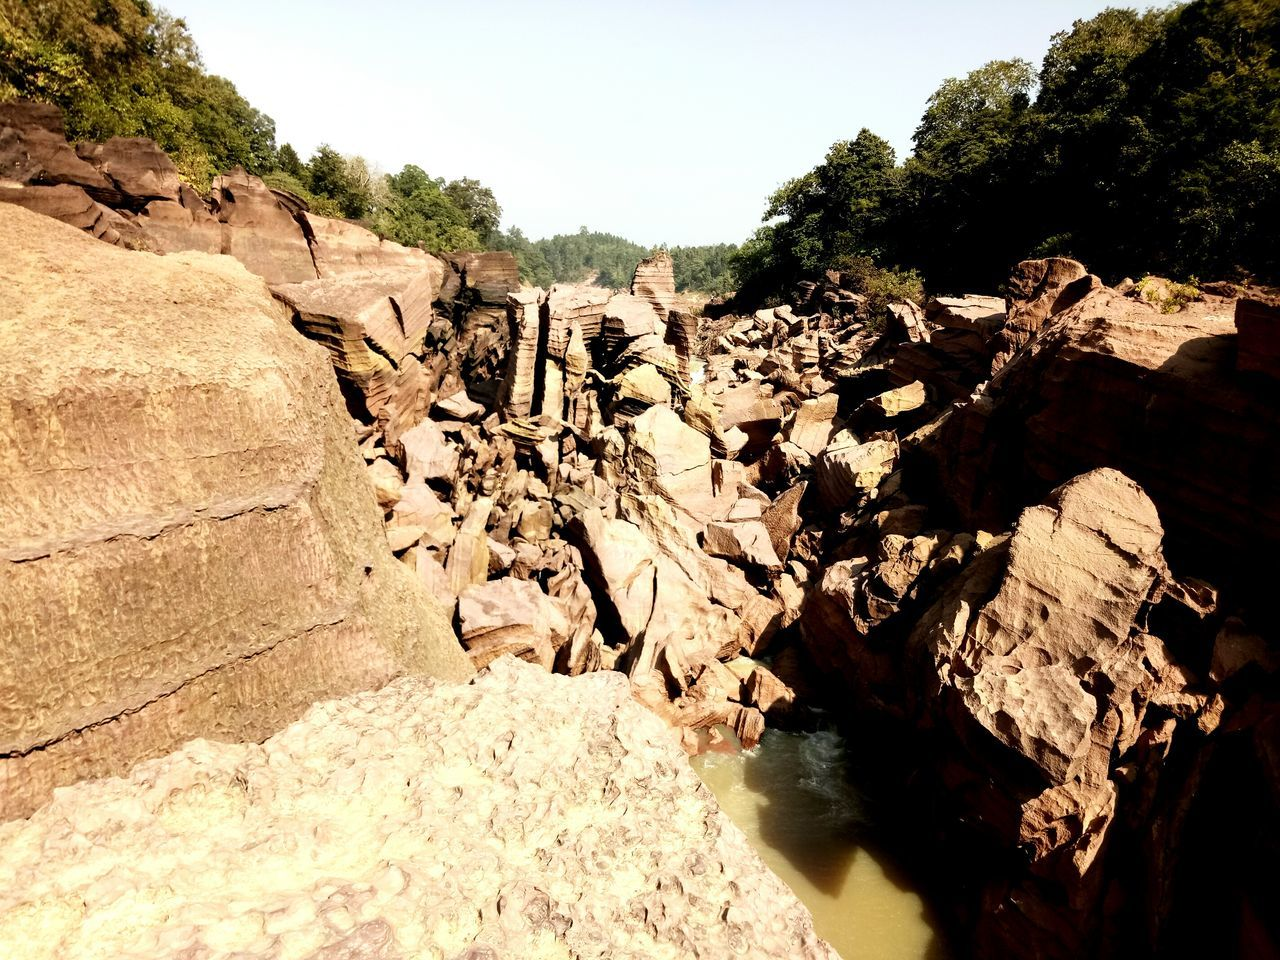 nature, rock - object, rock, tranquility, beauty in nature, landscape, no people, outdoors, cliff, adventure, day, tree, sky